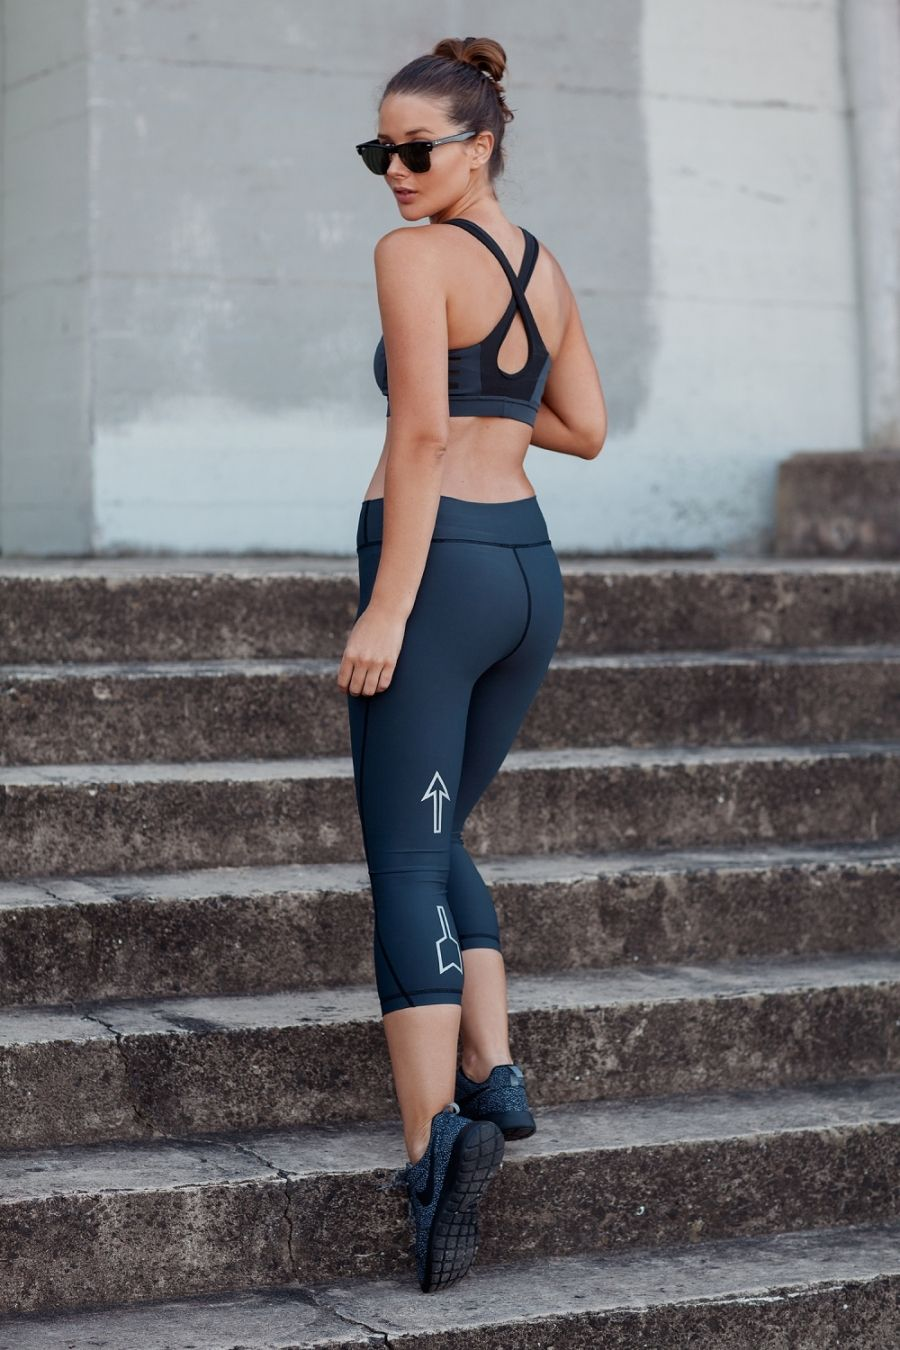 Home Harper and Harley   Gym wear for women, Fitness